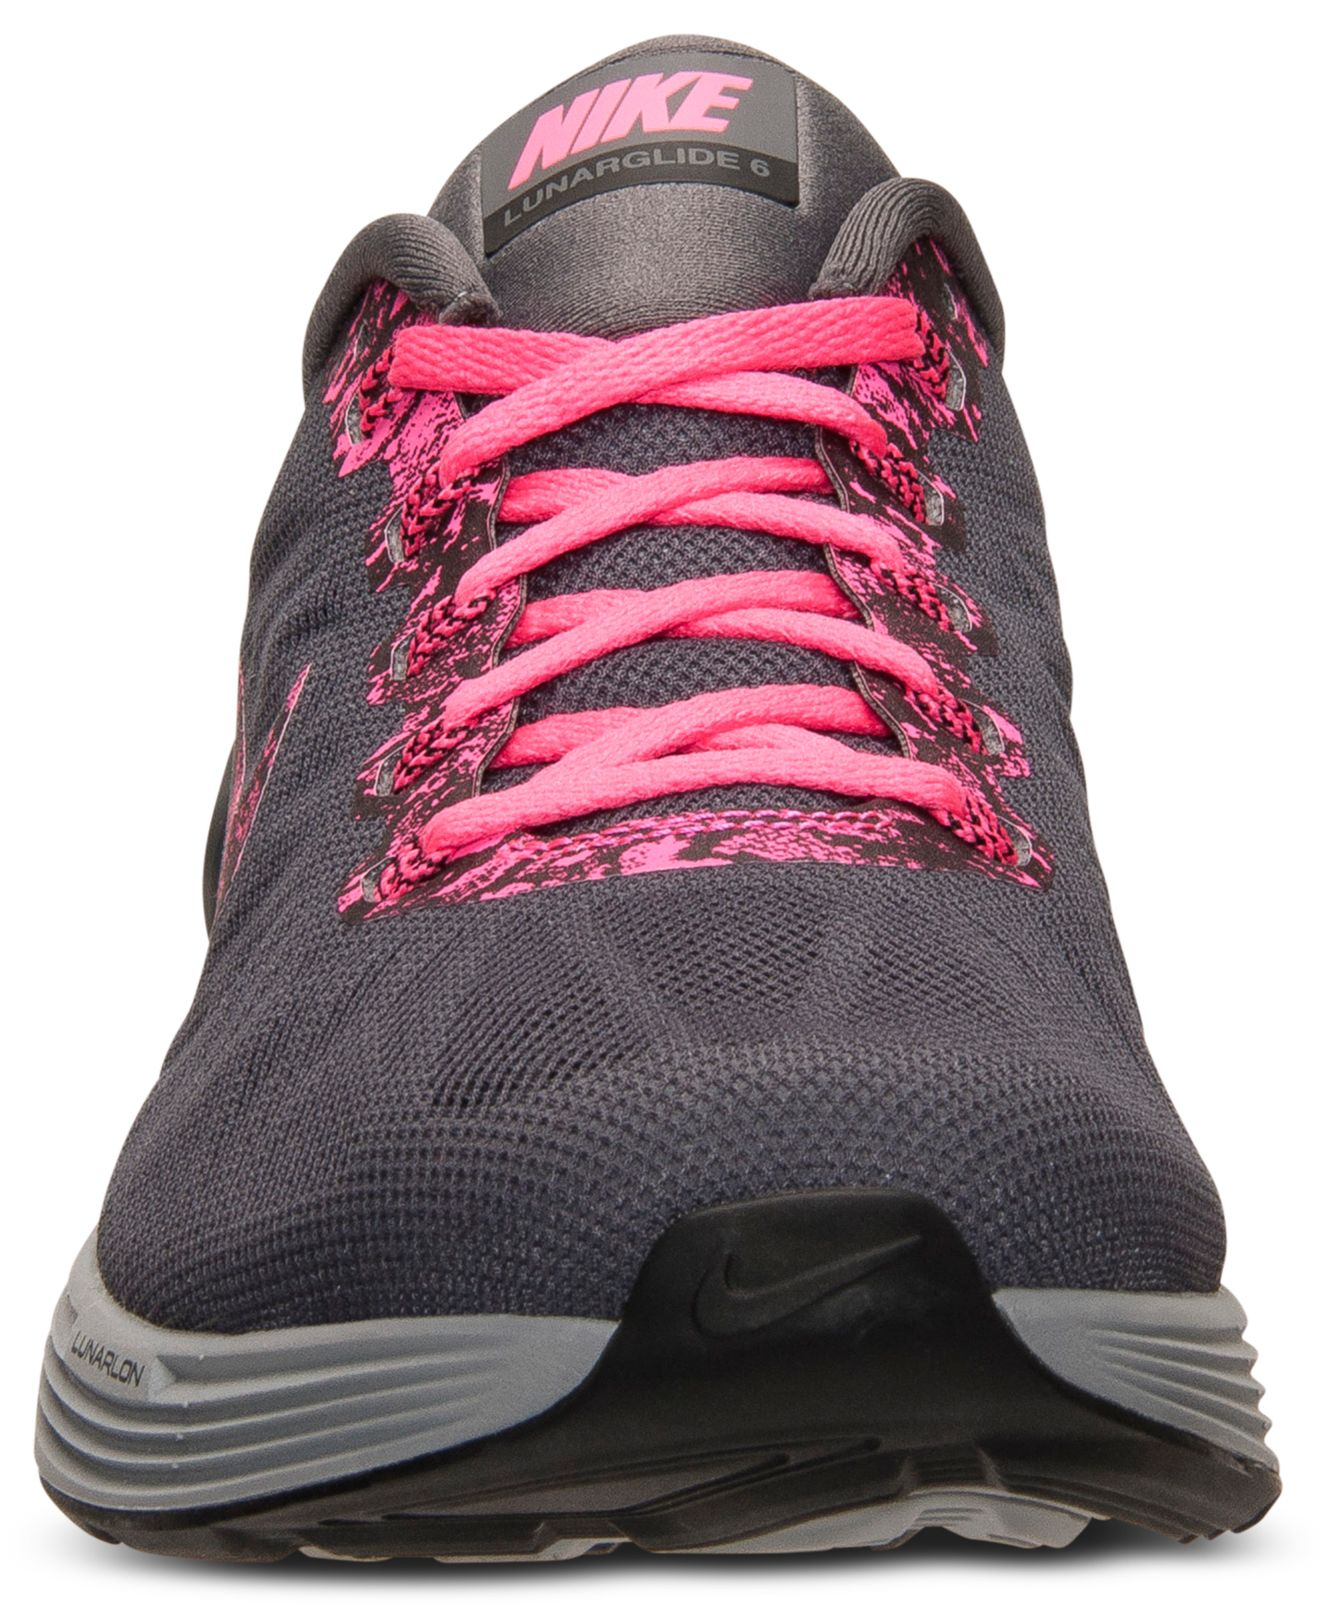 What Makes The Asics Women 39 S Gel Venture 4 A Great Shoe Our Review